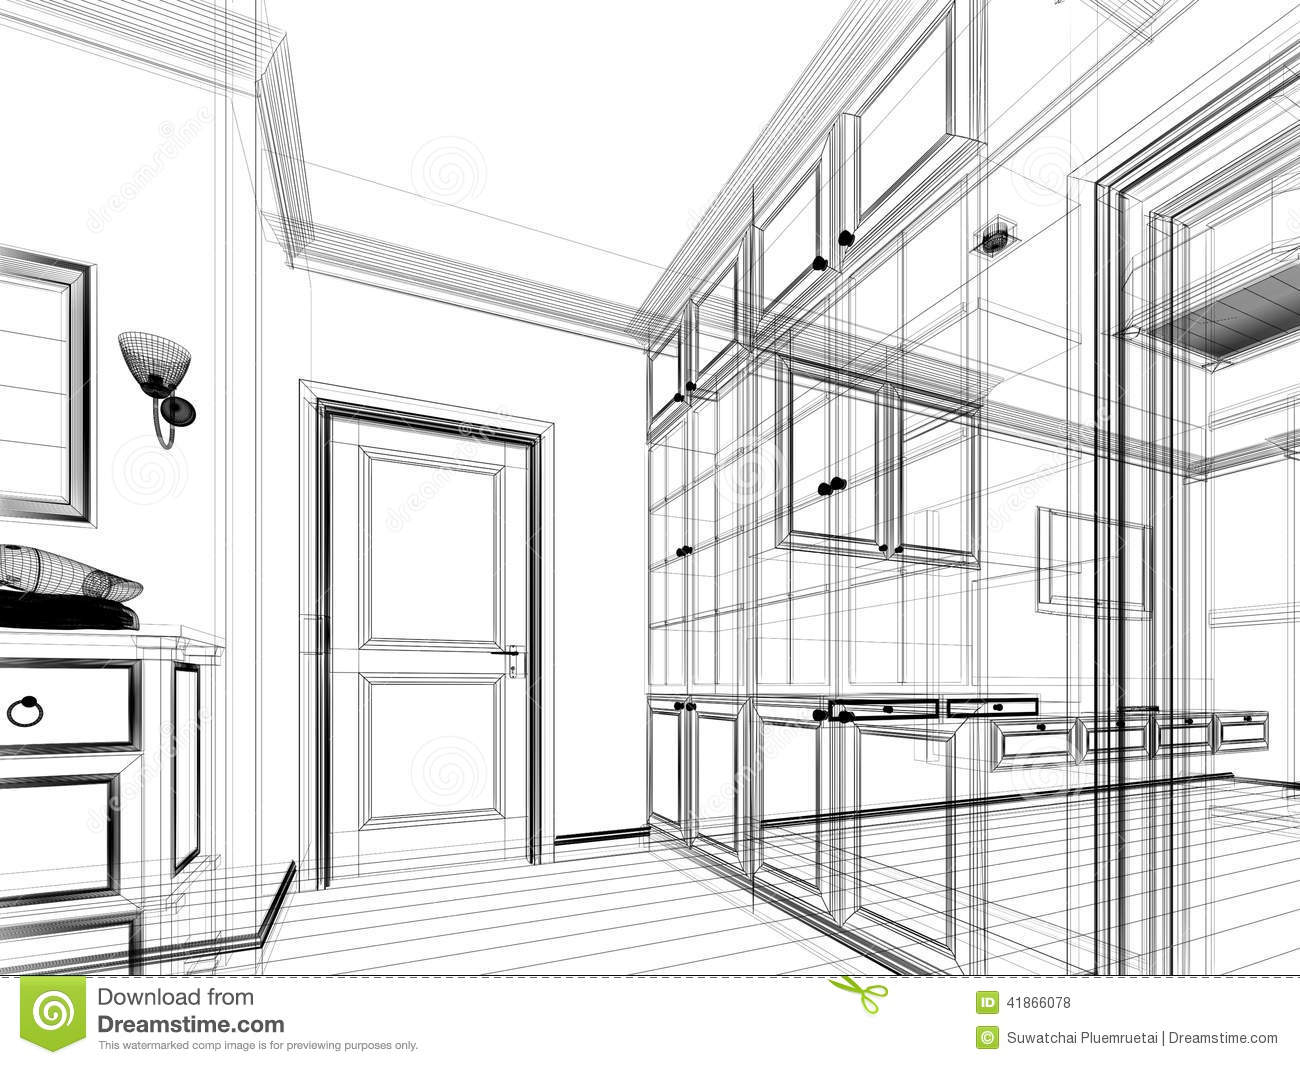 abstract sketch design of interior walk-in closet stock illustration